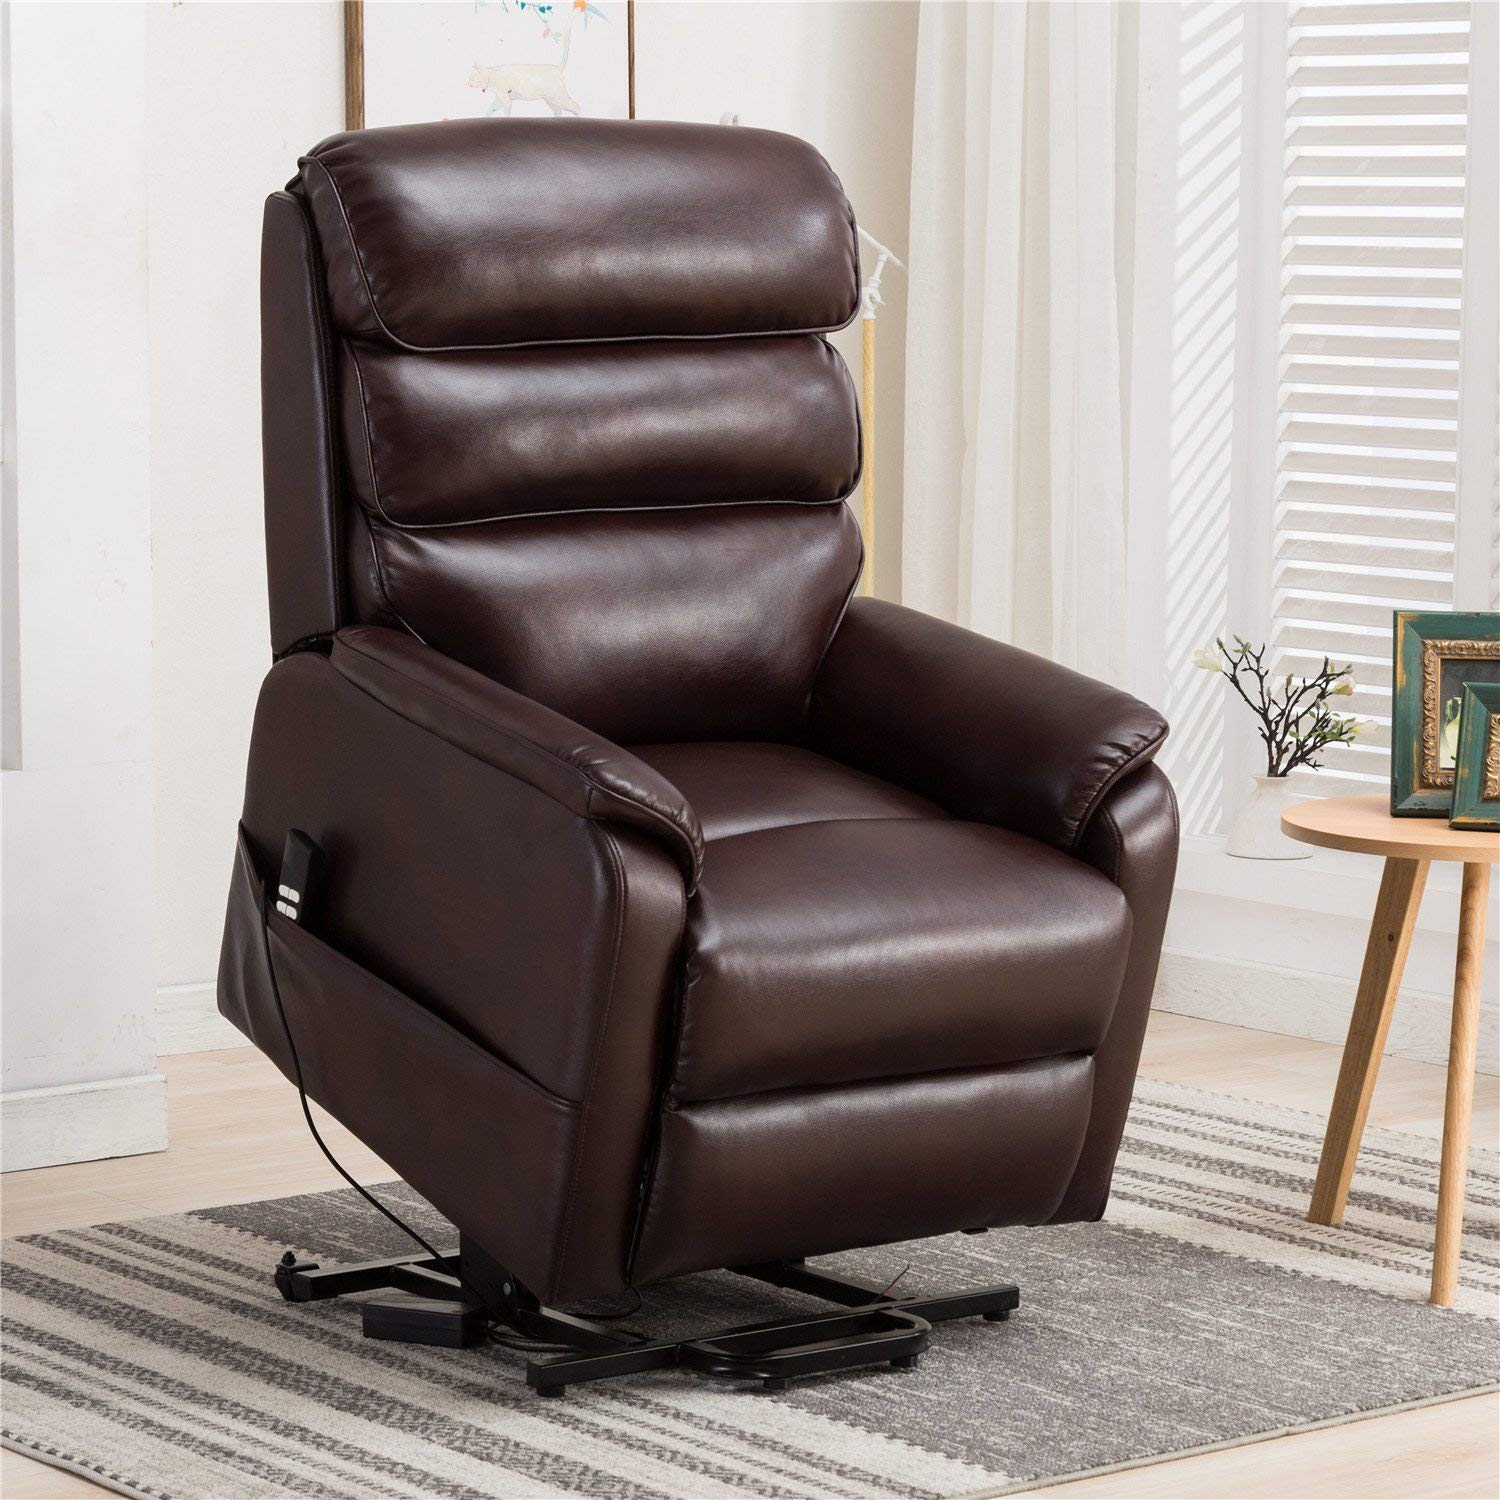 Irene House (Dual Motor)Electric Power Lift Recliner Chair For Elderly Comfortable (Breath Leather ),Soft and Sturdy(Brown) …